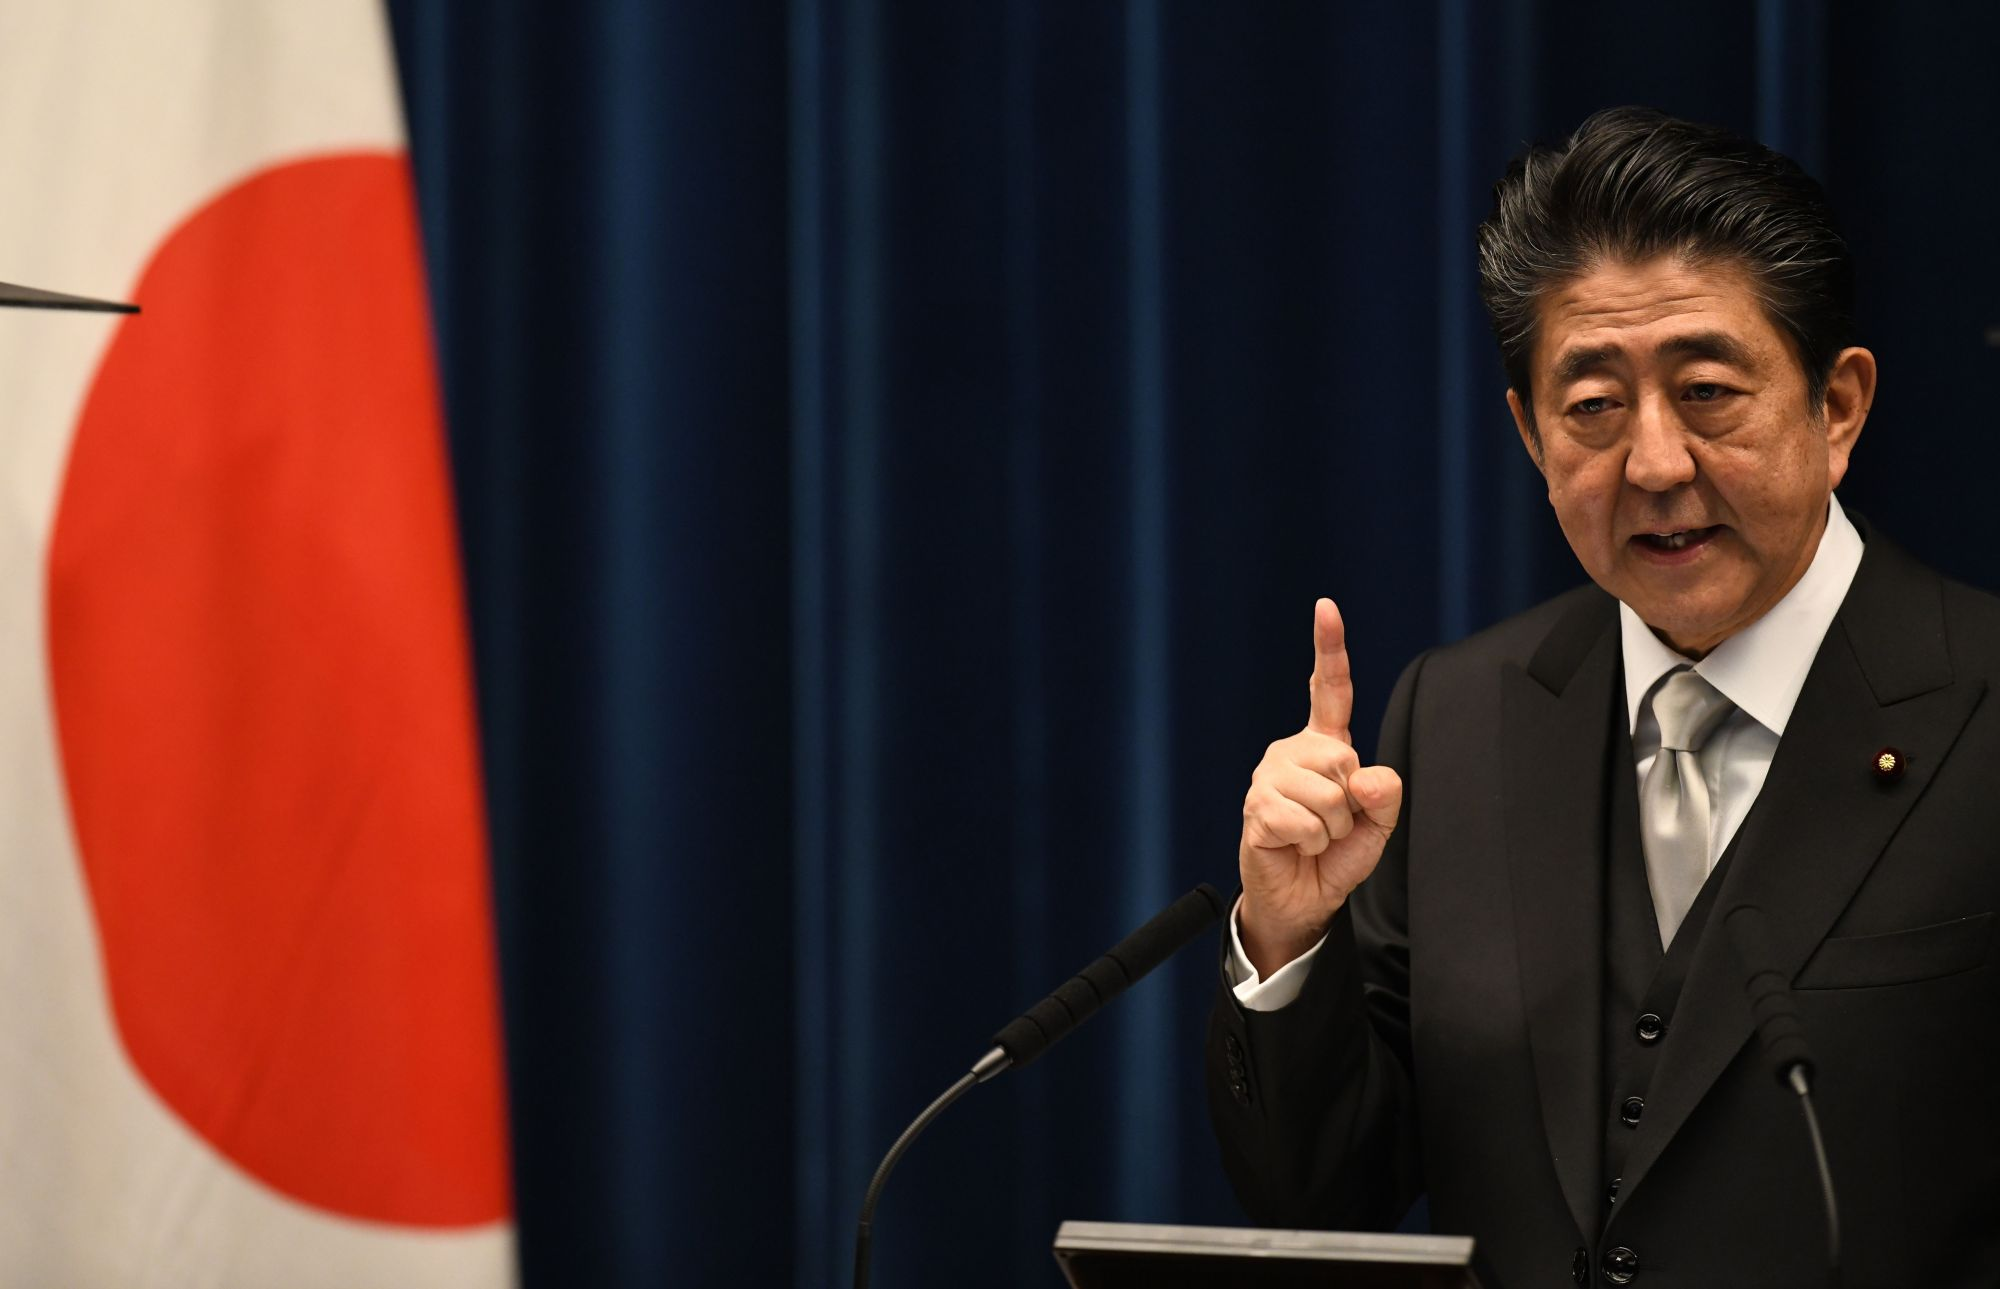 Prime Minister Shinzo Abe answers a question during a news conference after his Cabinet reshuffle Tuesday. The latest public opinion poll conducted by Kyodo News shows the approval rate for his new ministerial team is at 46.5 percent, down 0.9 points from the previous poll last month. | AFP-JIJI